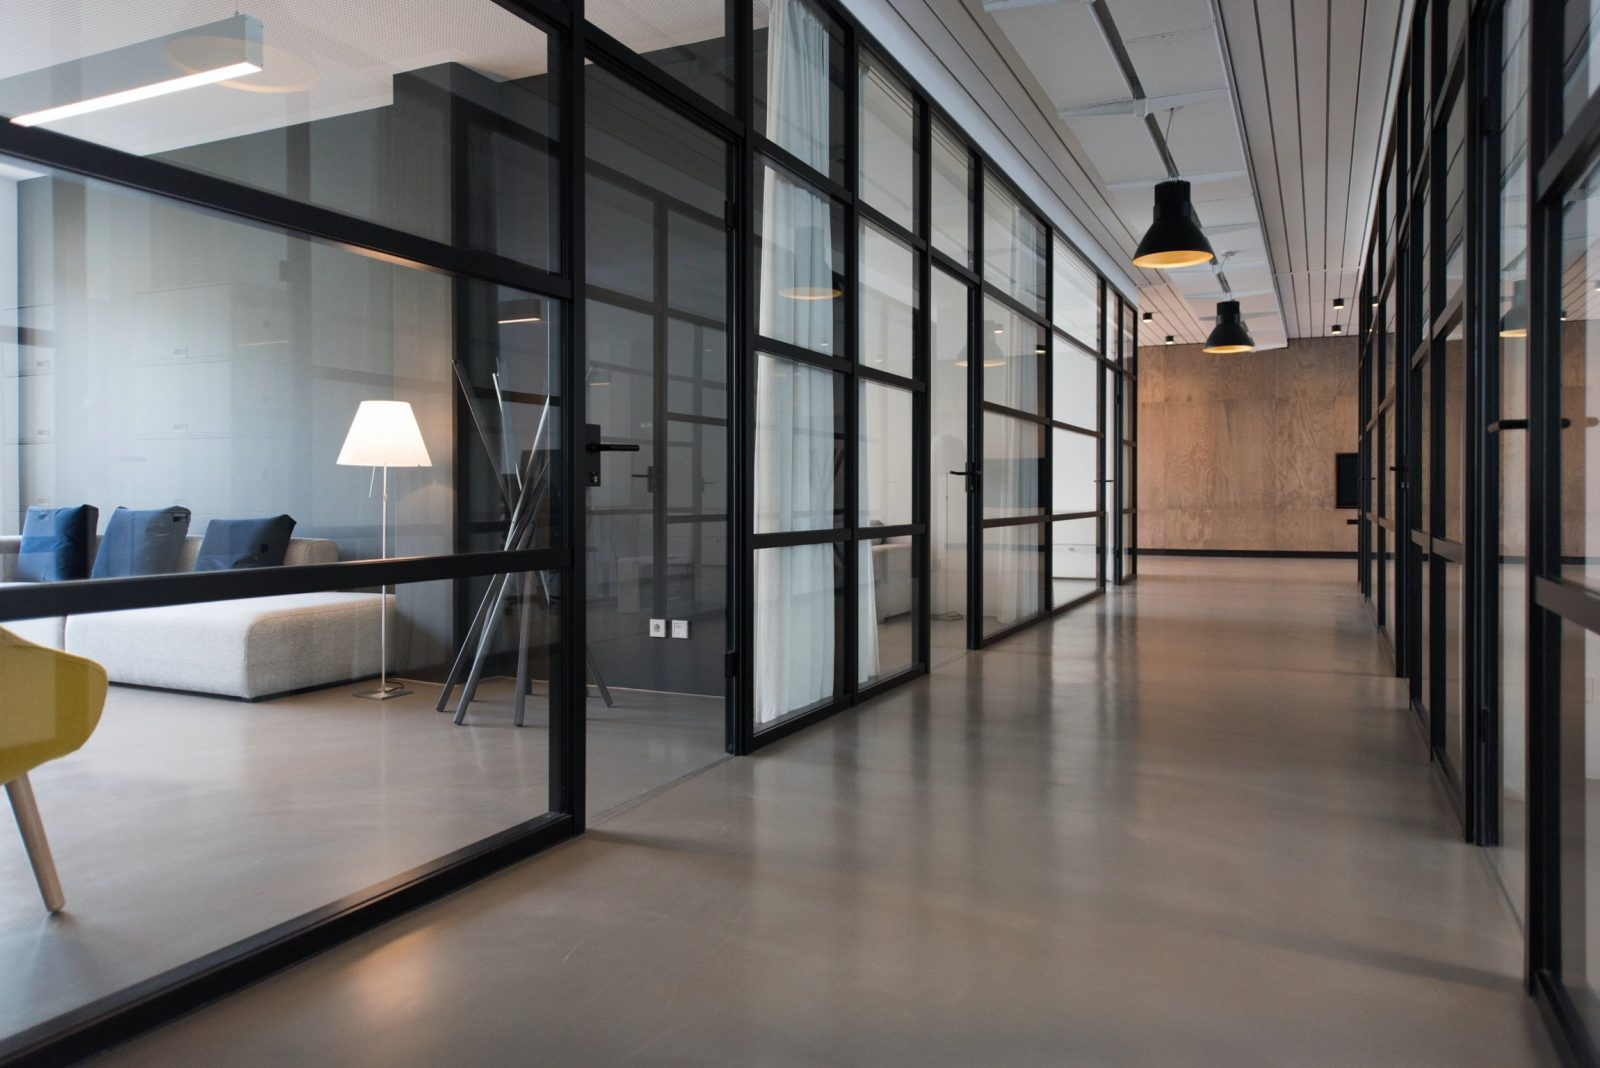 Why to consider Glass Office Walls for your commercial office Interiorof Glass Office Walls